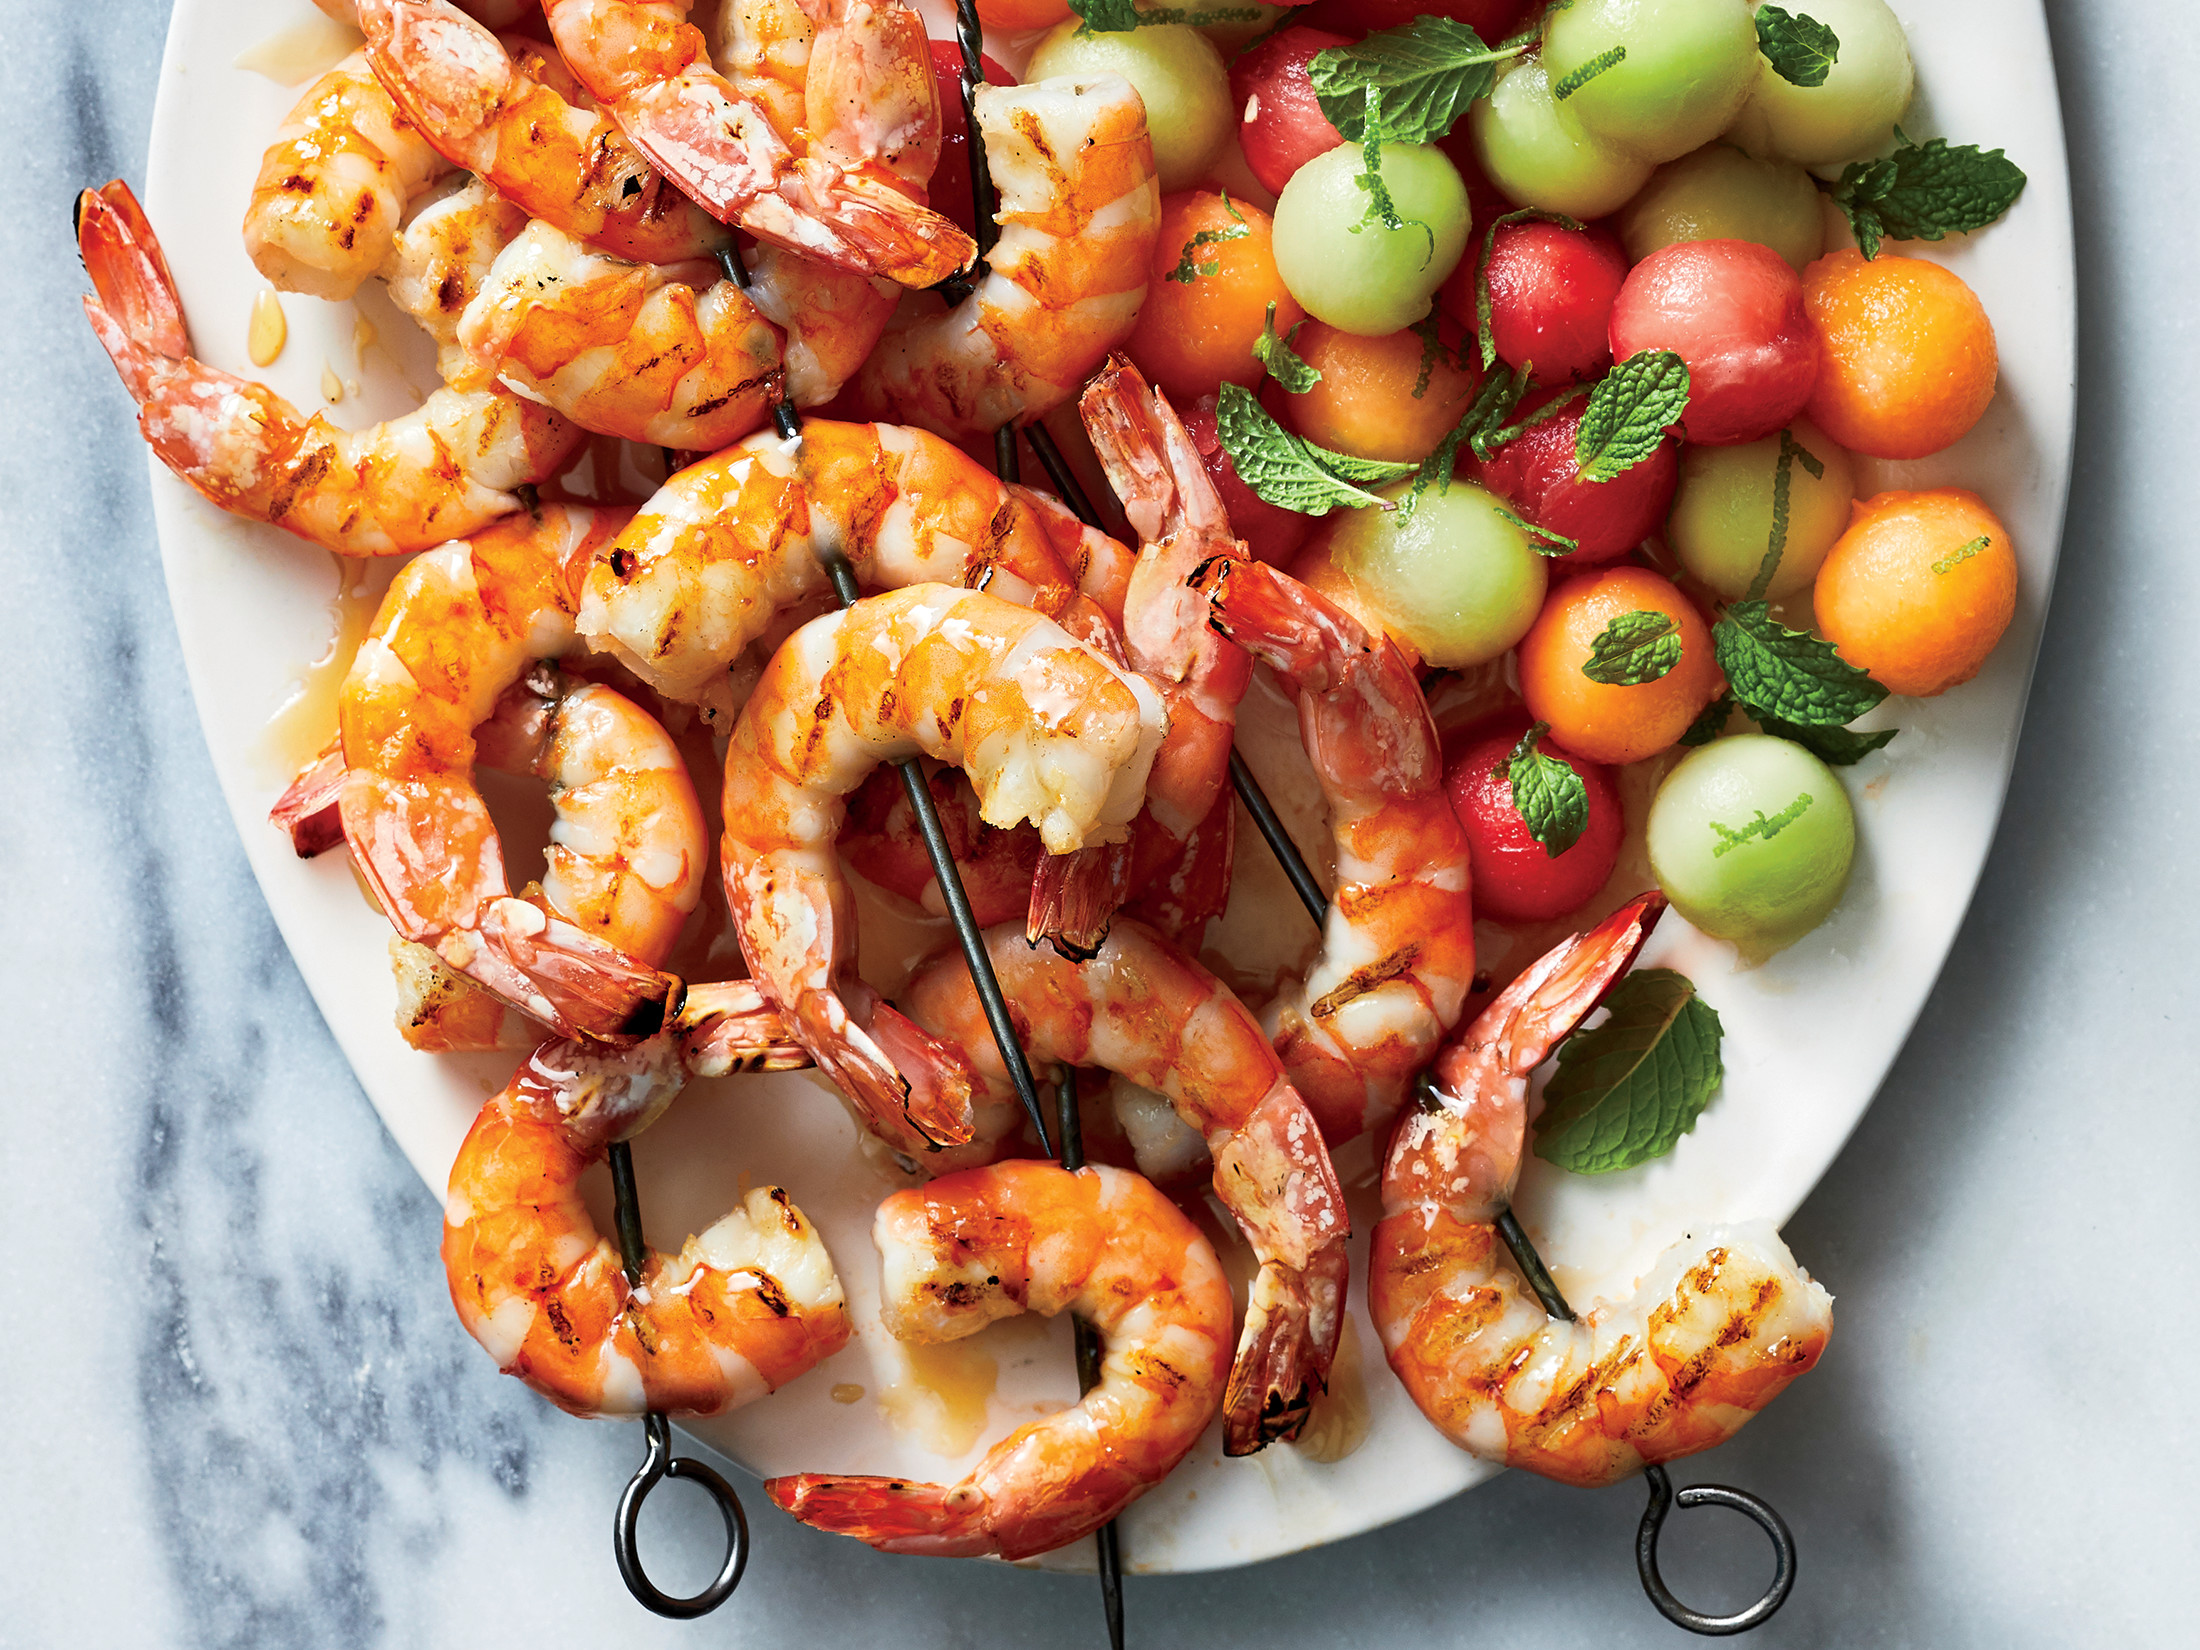 How to Cook Shrimp